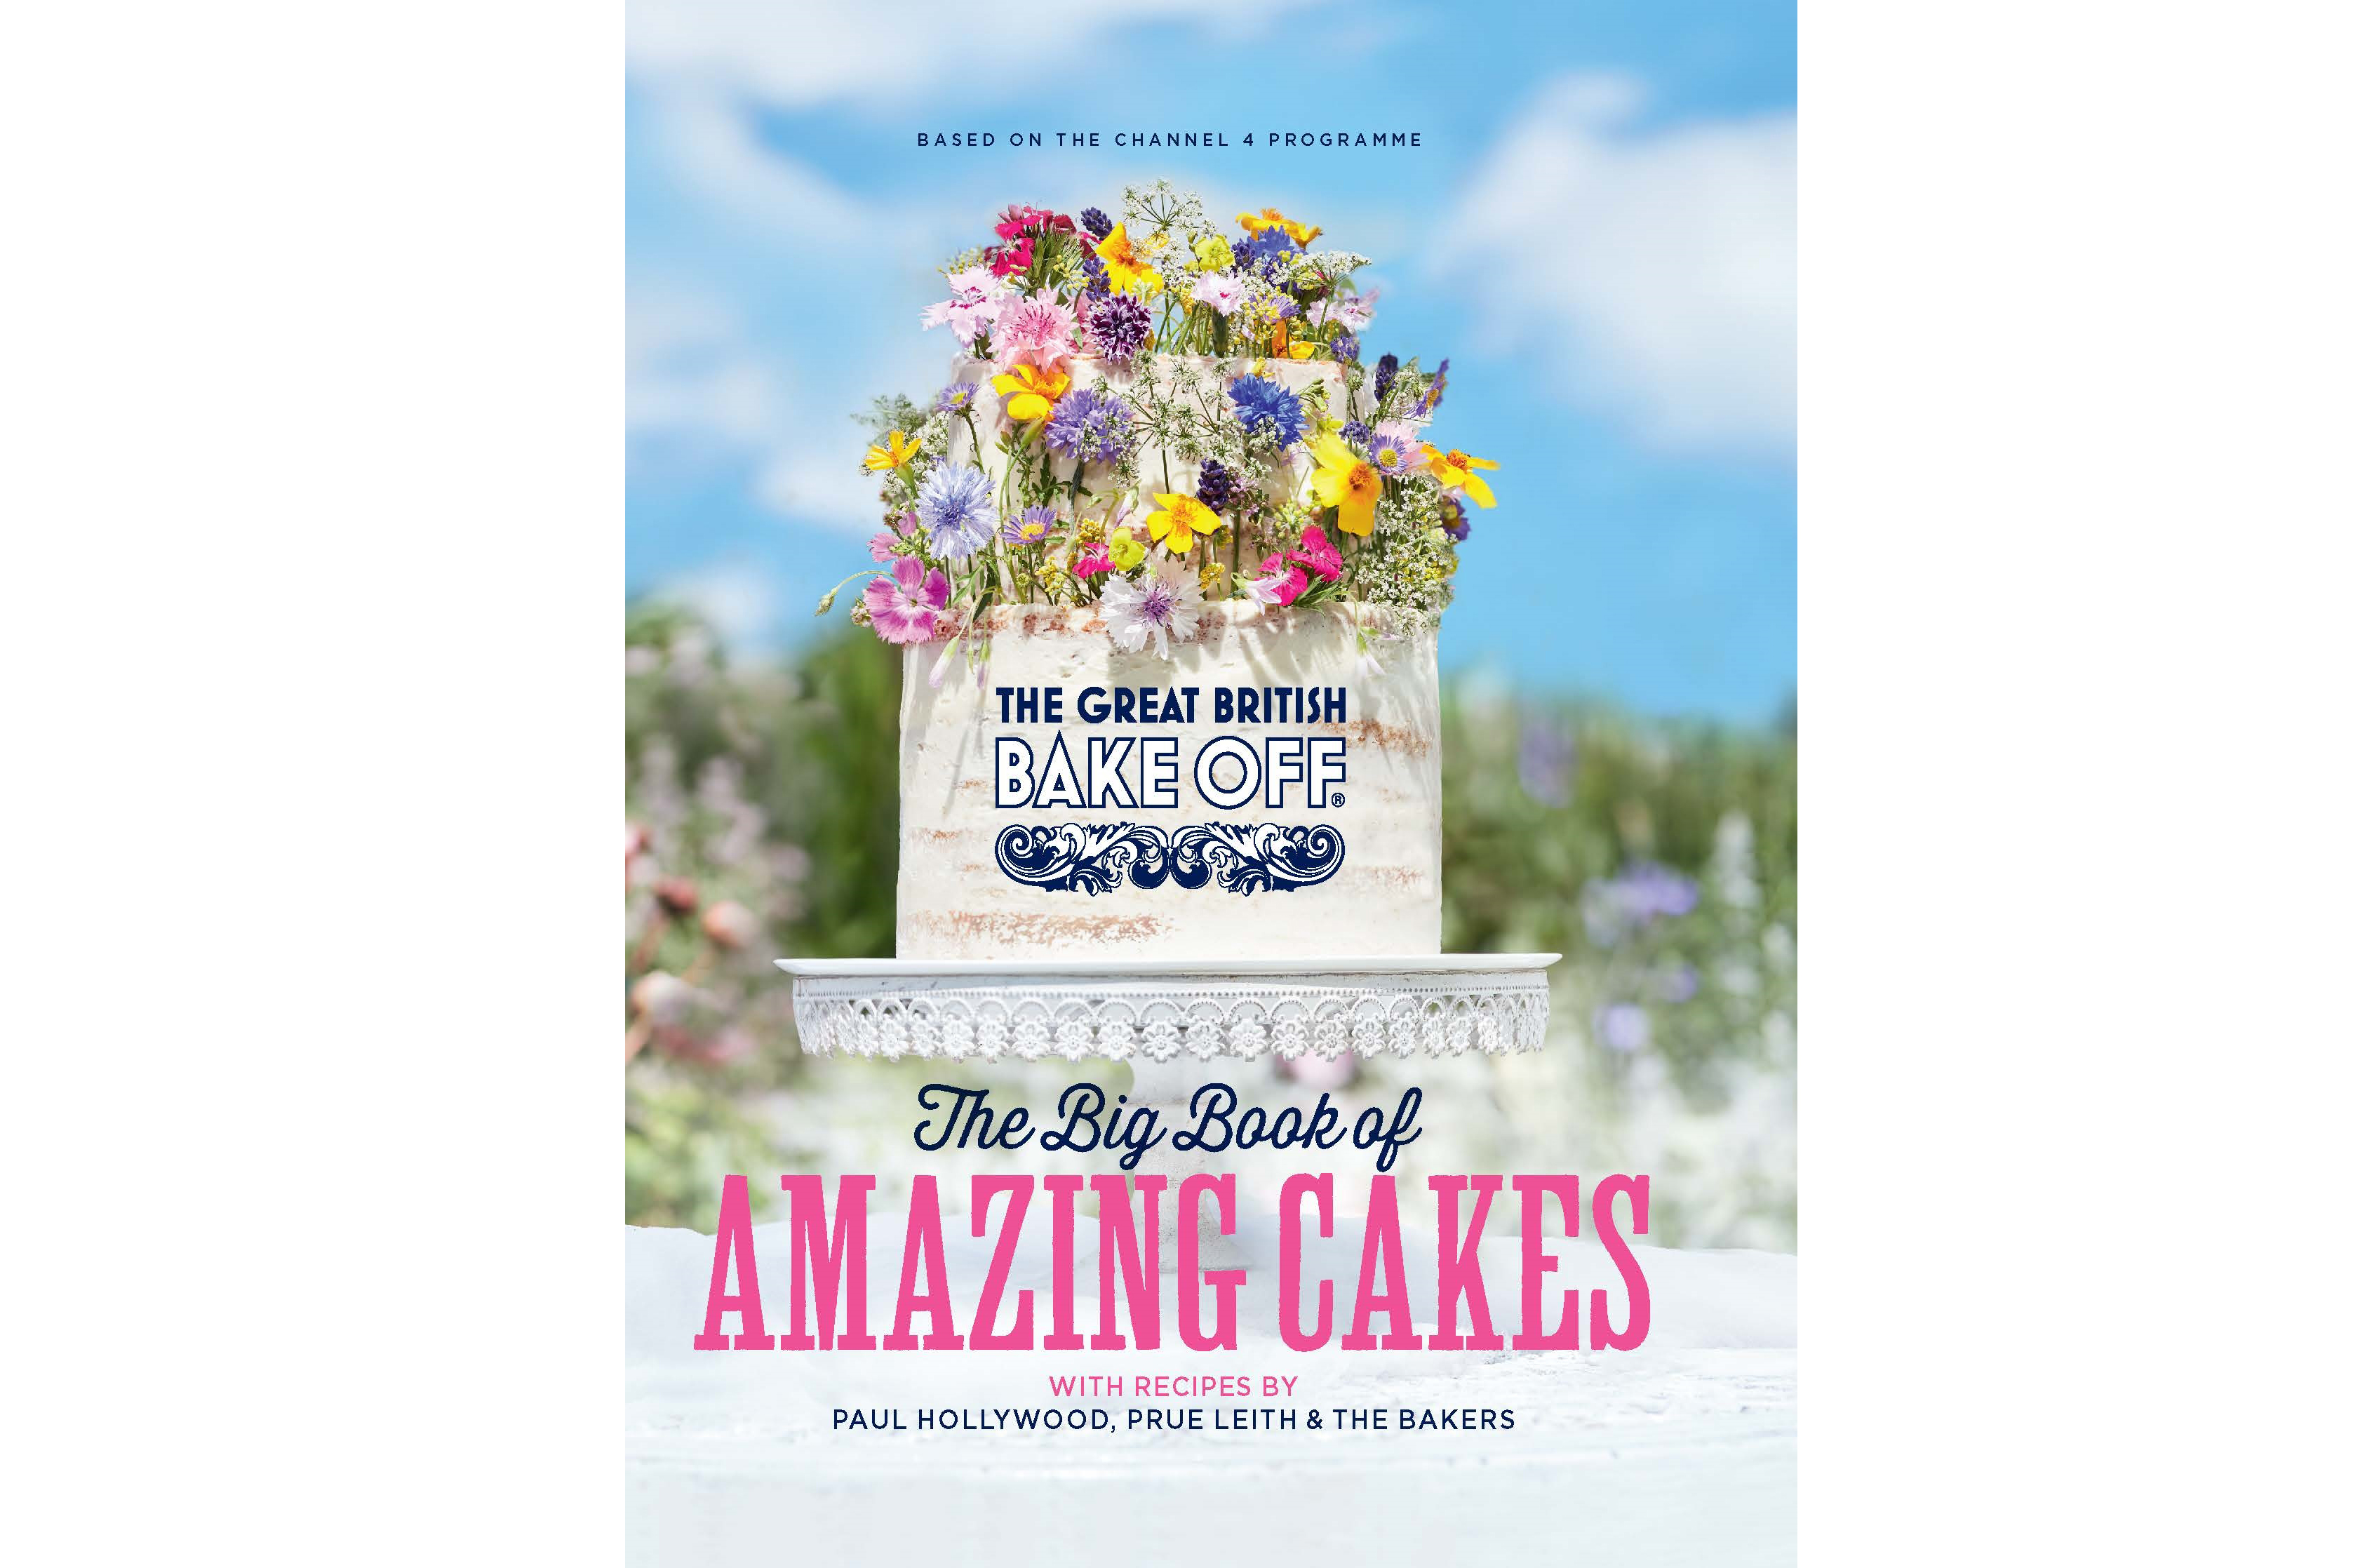 The Great British Bake Off: The Big Book of Amazing Cakes (Sphere/PA)